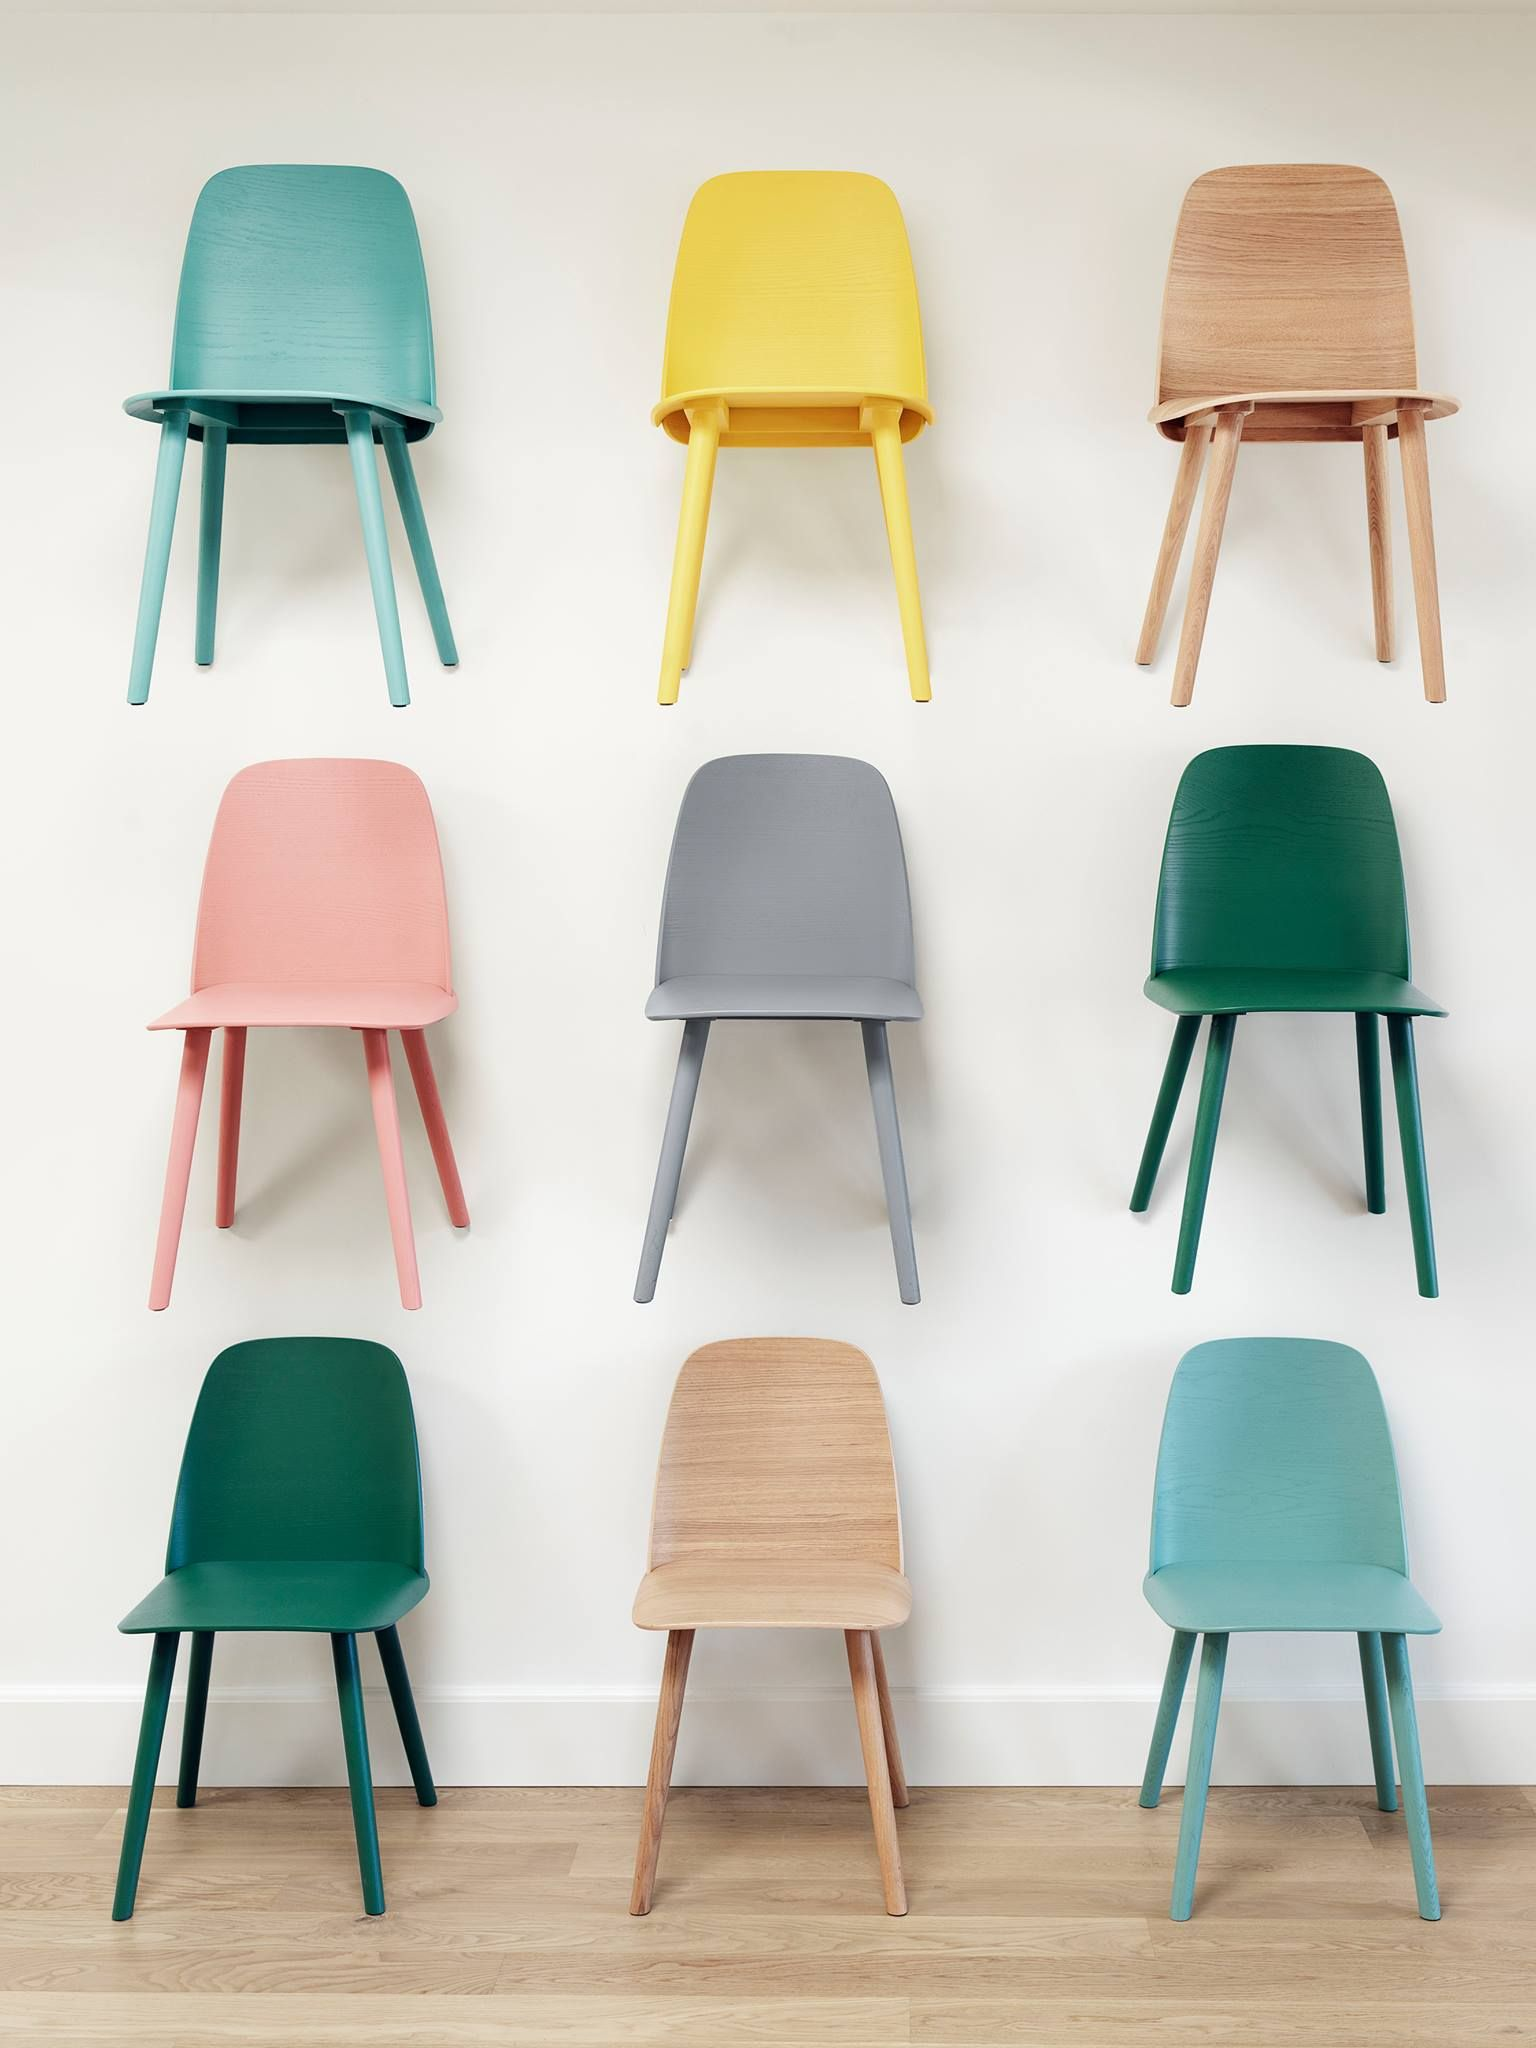 Tabourets Muuto Nerd Chair Is An Iconic And Characteristic Chair Designed By David